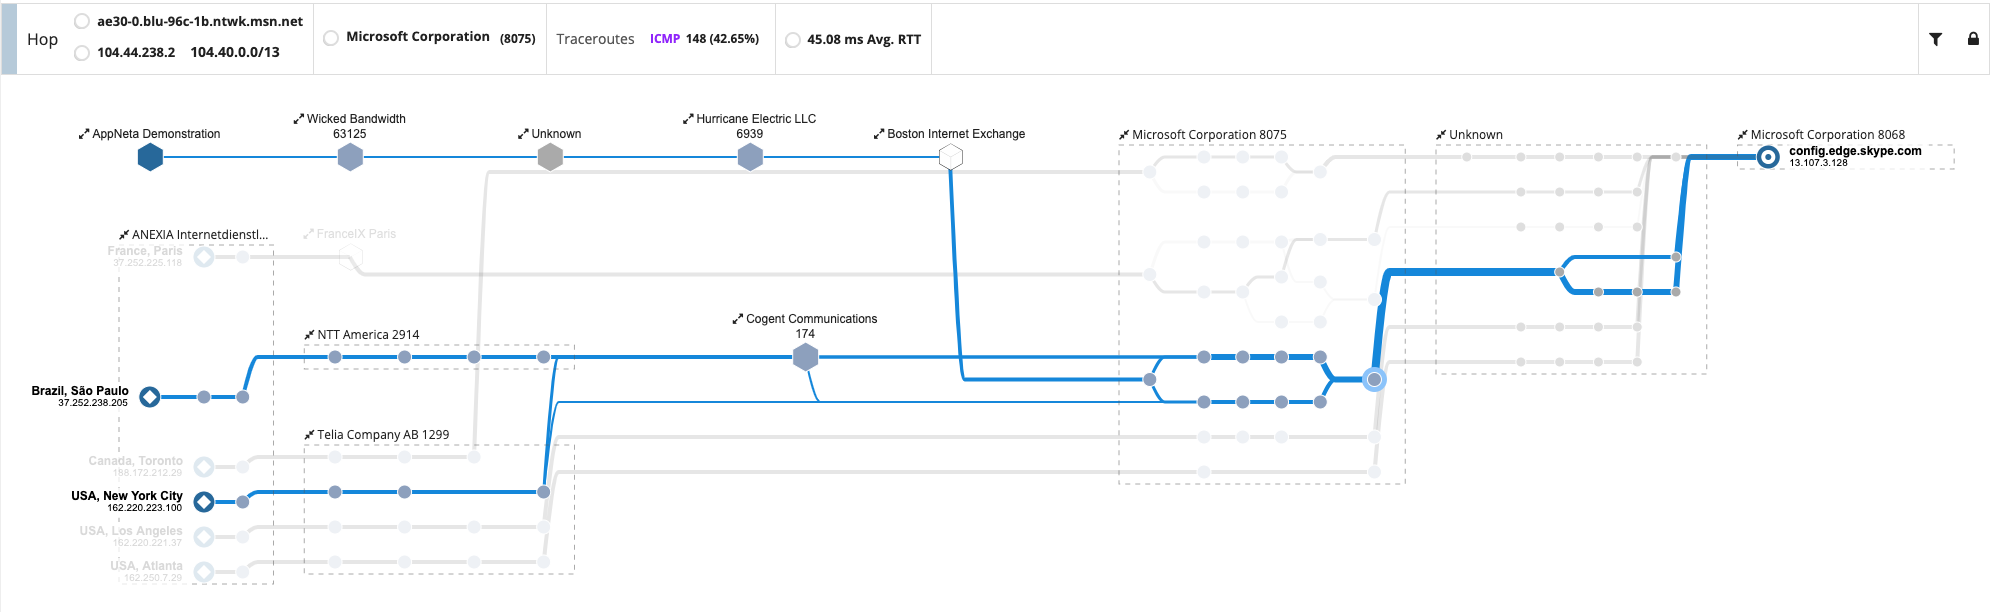 AppNeta performance monitoring shows you routing differences from multiple locations through cloud networks